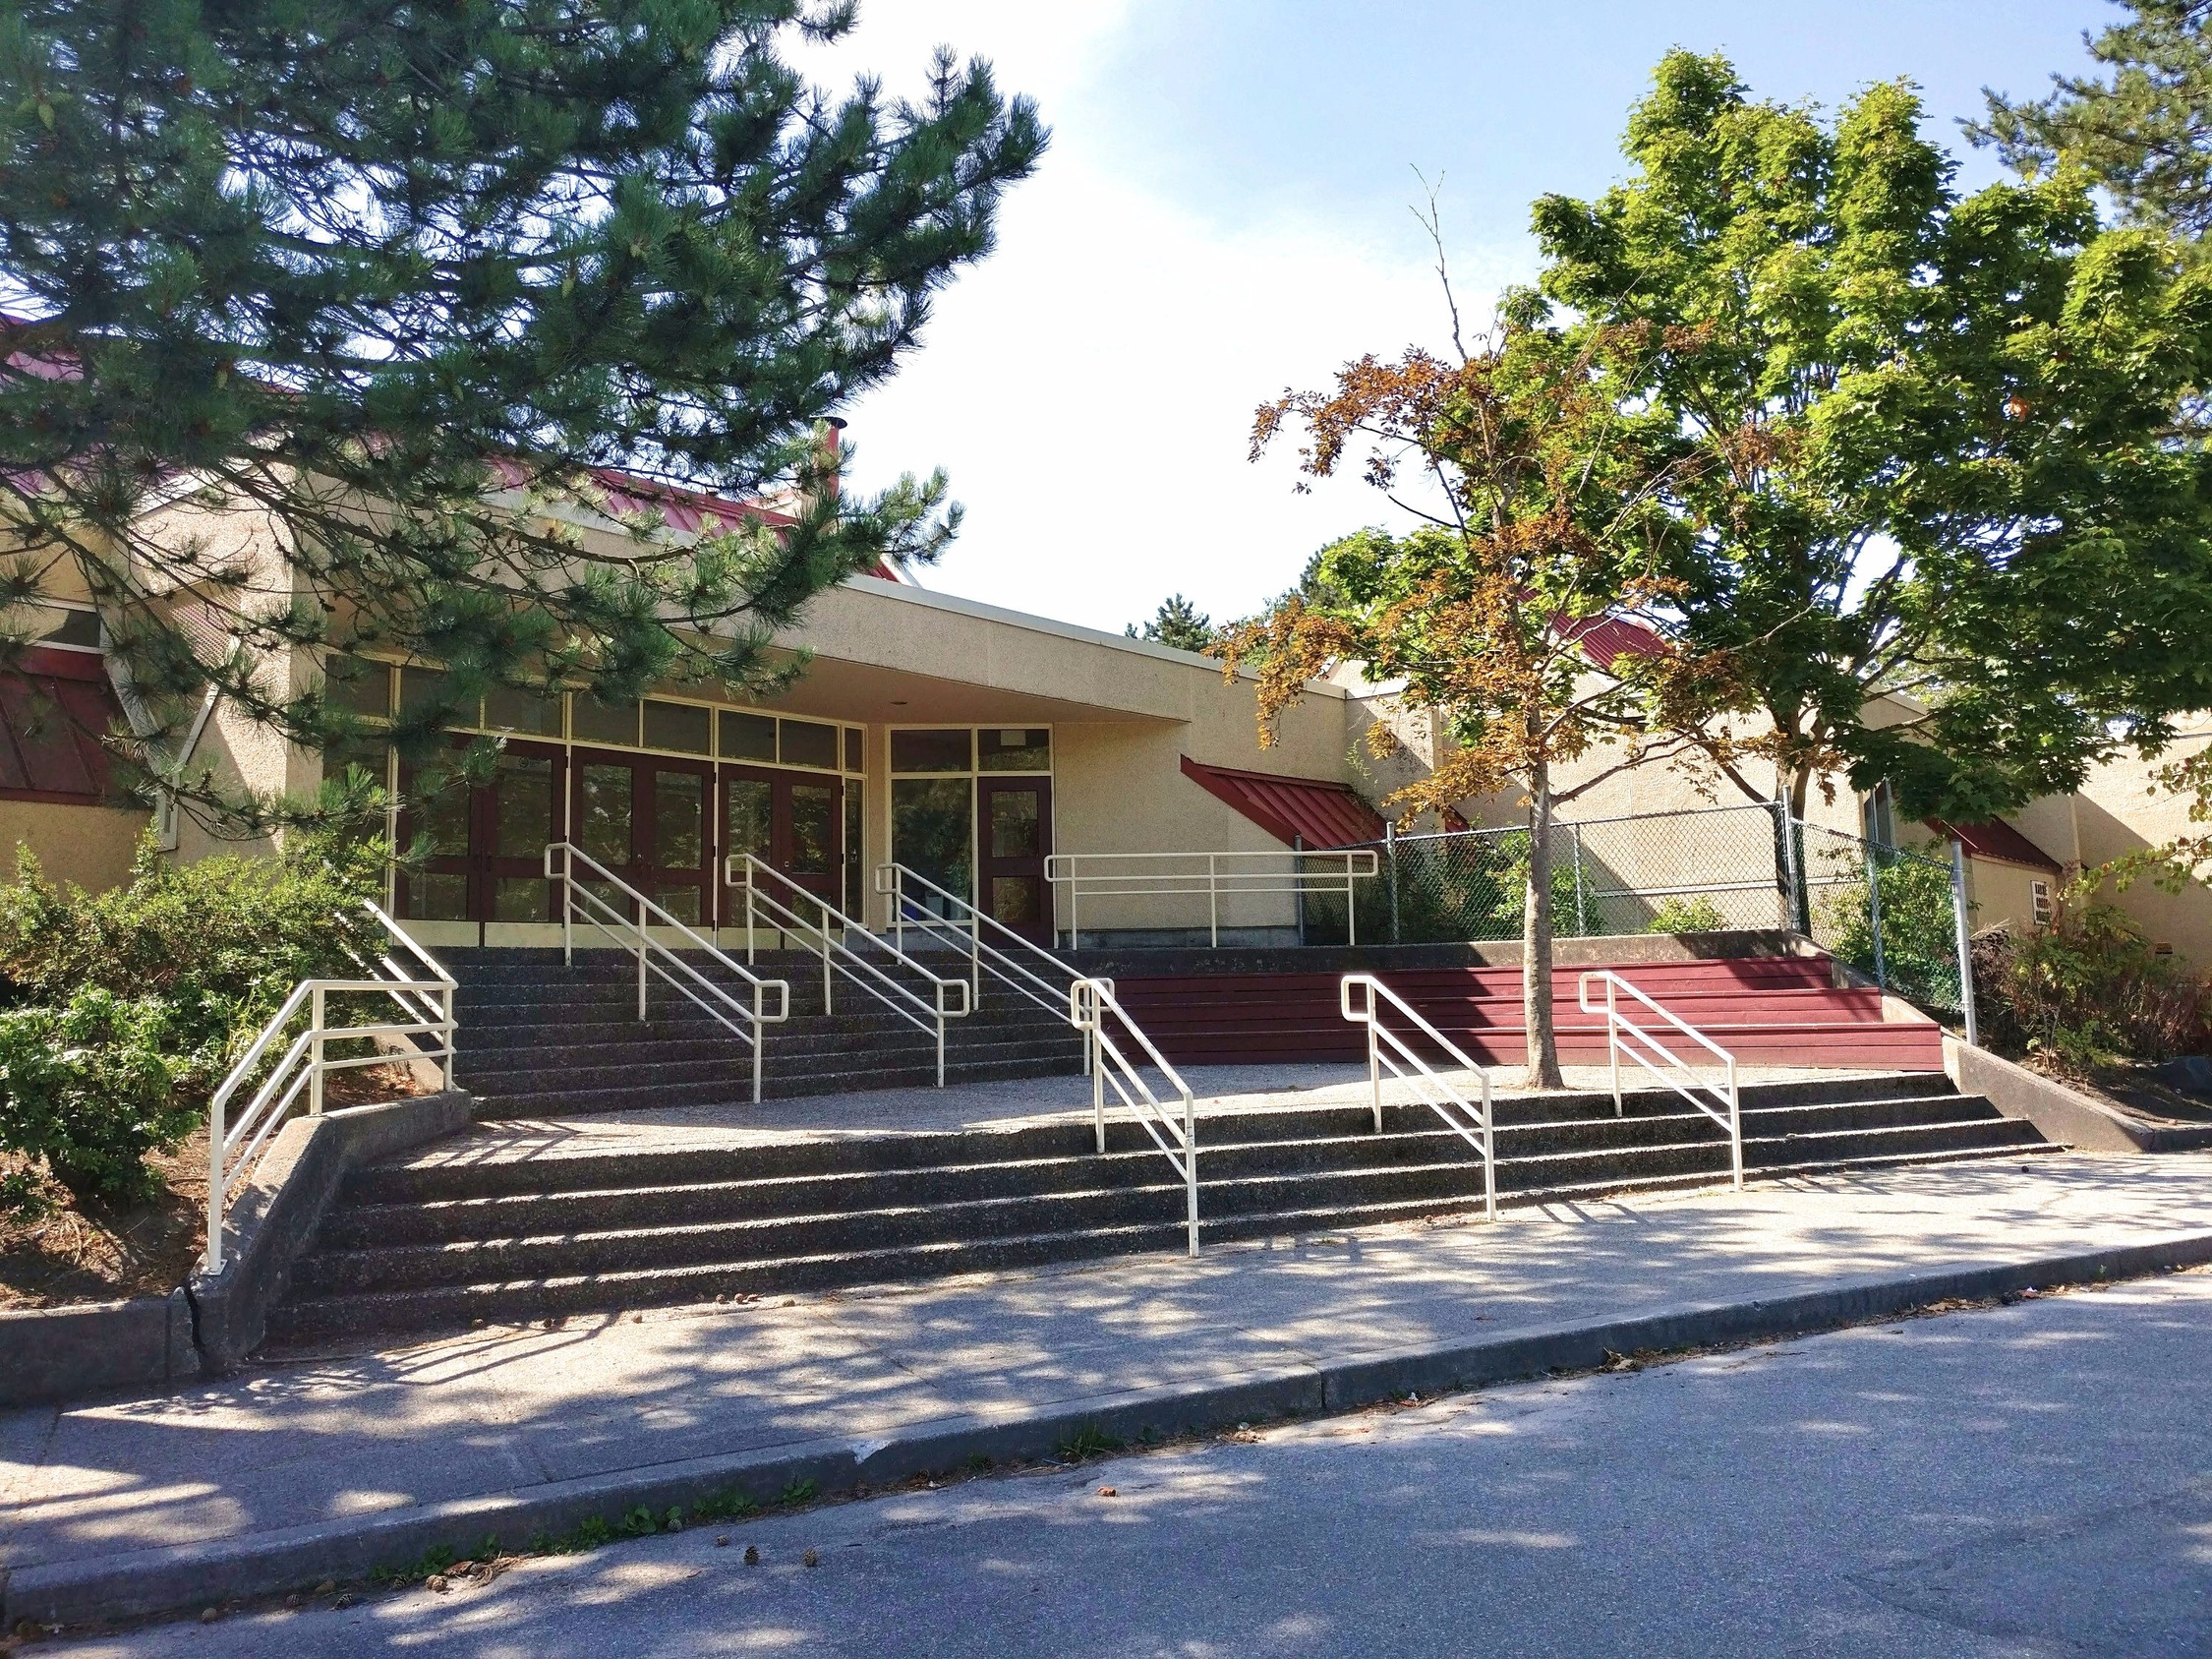 False Creek Elementary